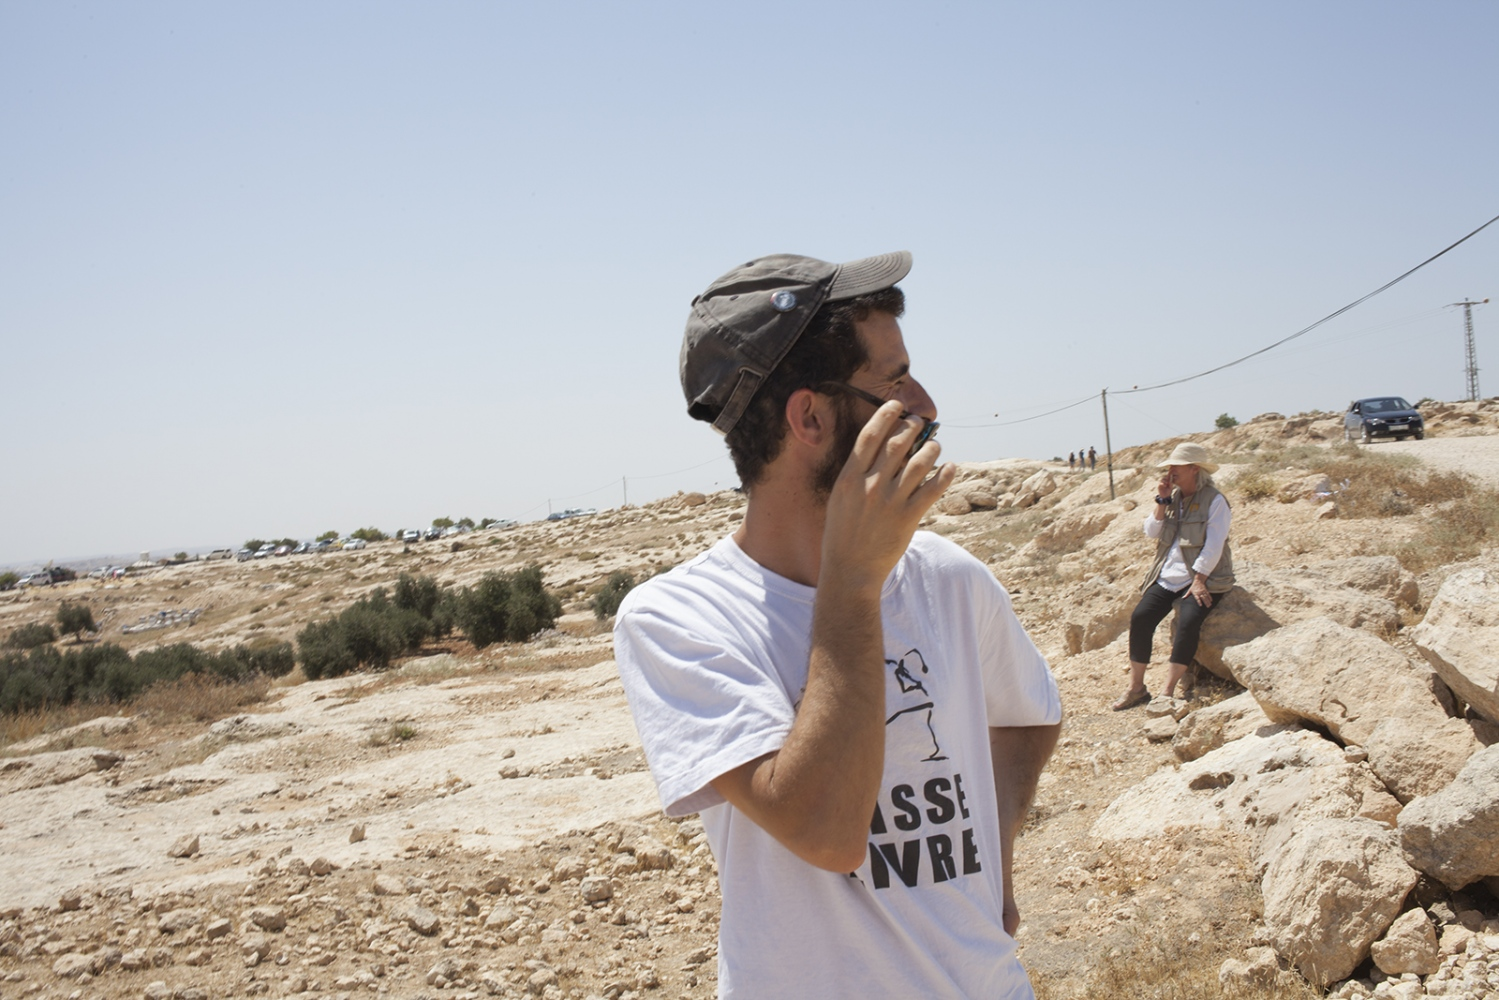 Activist from a demonstration, outside of Hebron.